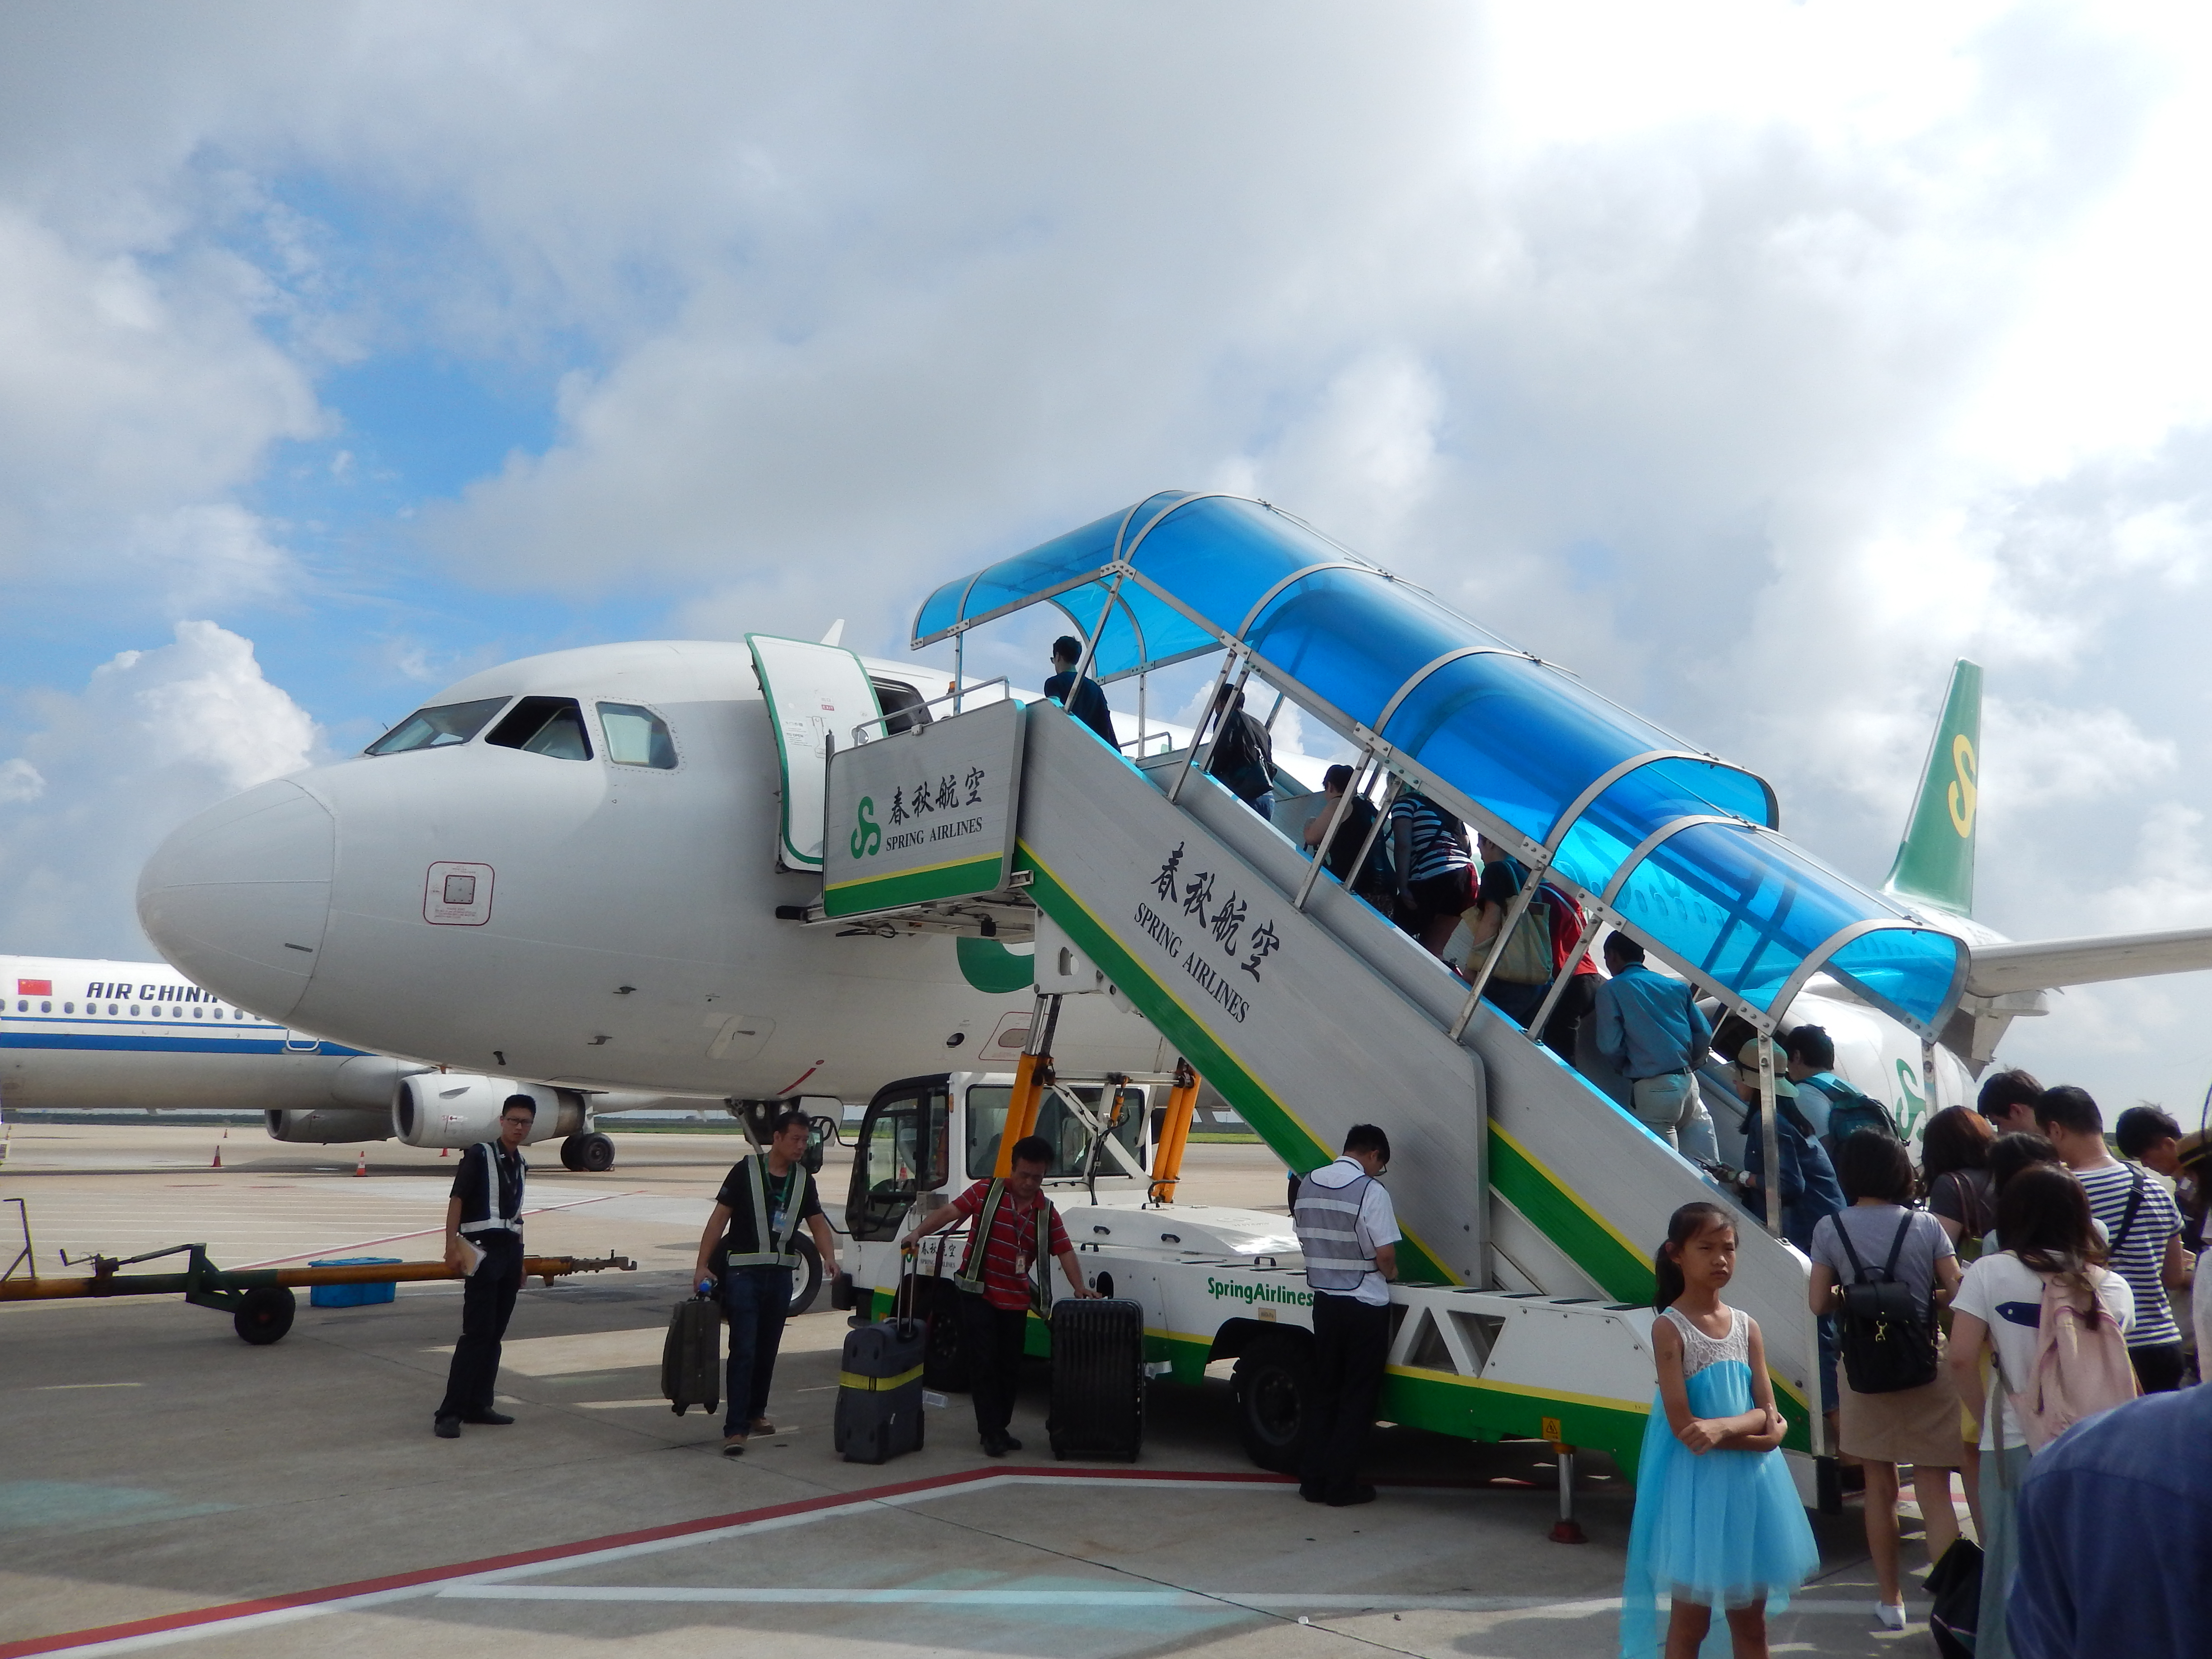 File:Spring Airlines Aircraft With Passenger Boarding Stairs @ PVG